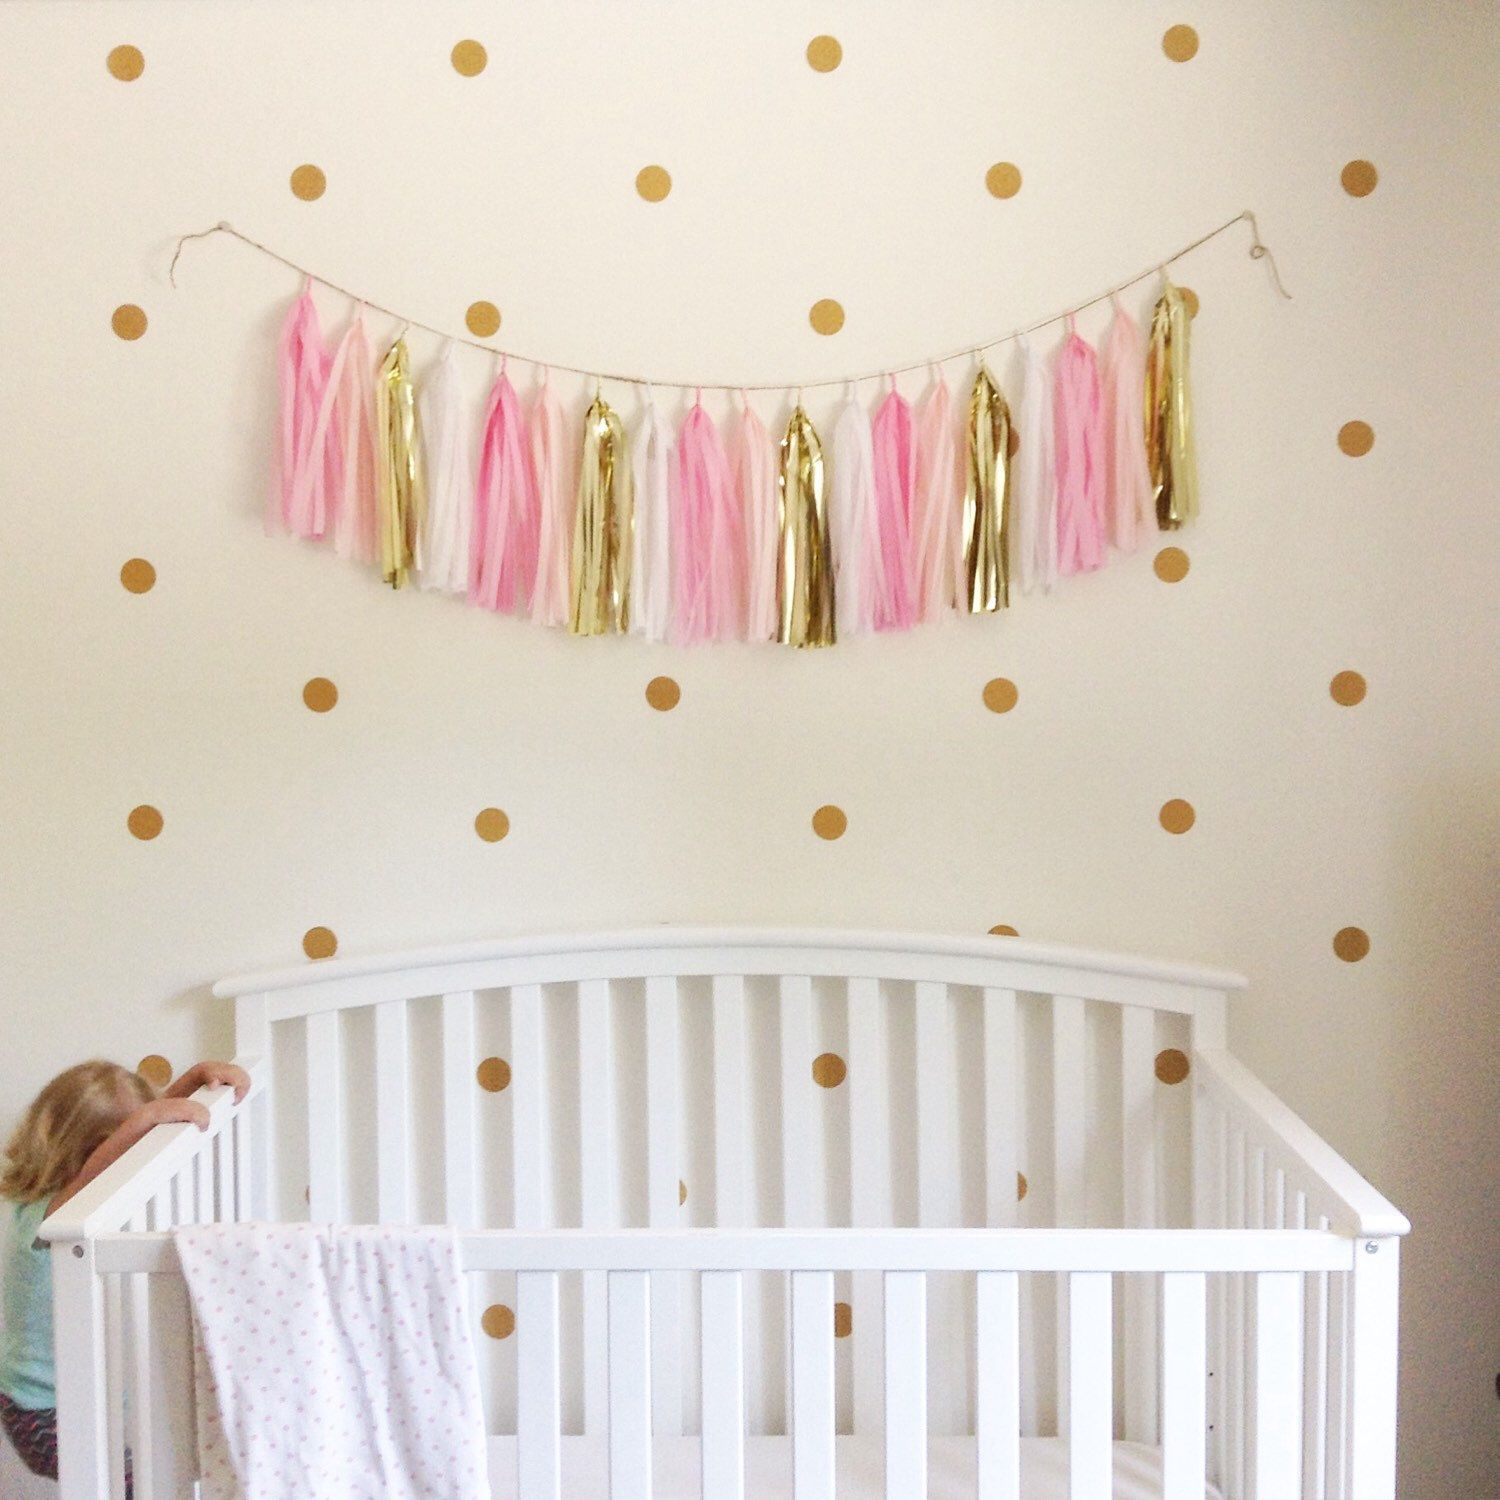 Polka dot wall decals gold glitter circle decals set of 60 2 polka dot wall decals gold glitter circle decals set of 60 2 inch stickers circle wall stickers amipublicfo Images